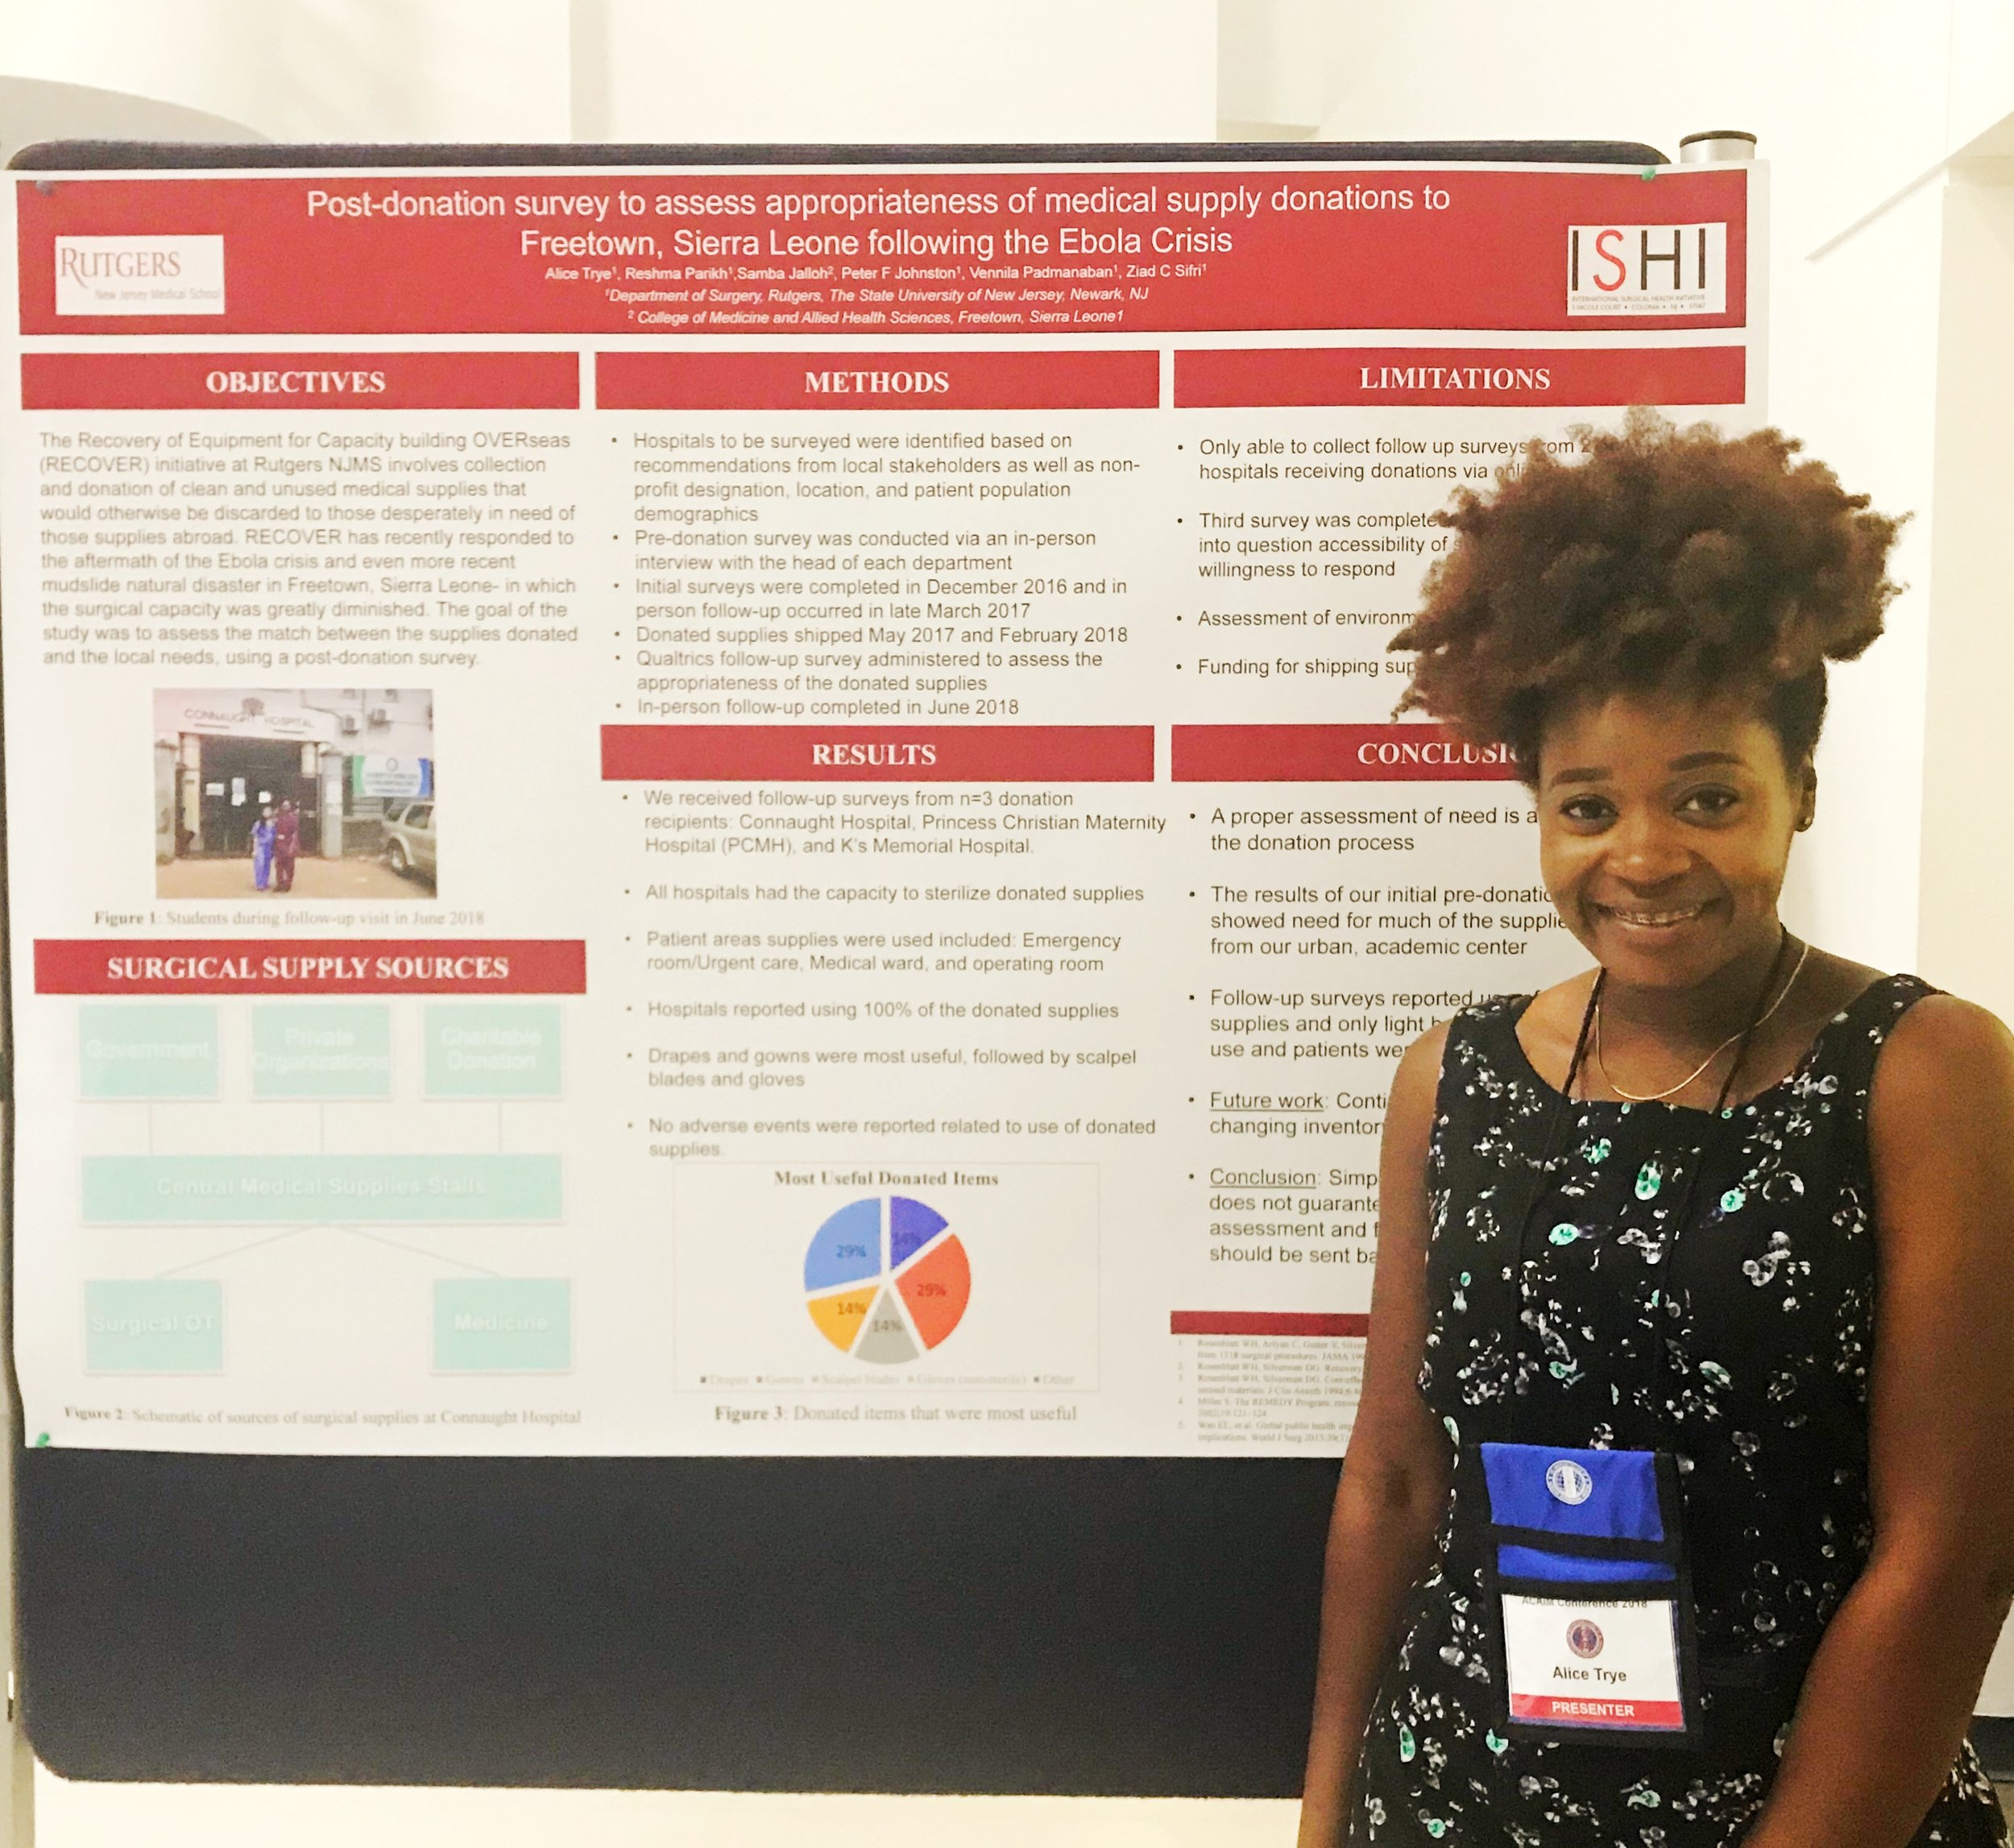 I presented my research this past week at the National Academic International Medicine Conference in Brooklyn, NY and was awarded an Honorable Mention in the poster competition!